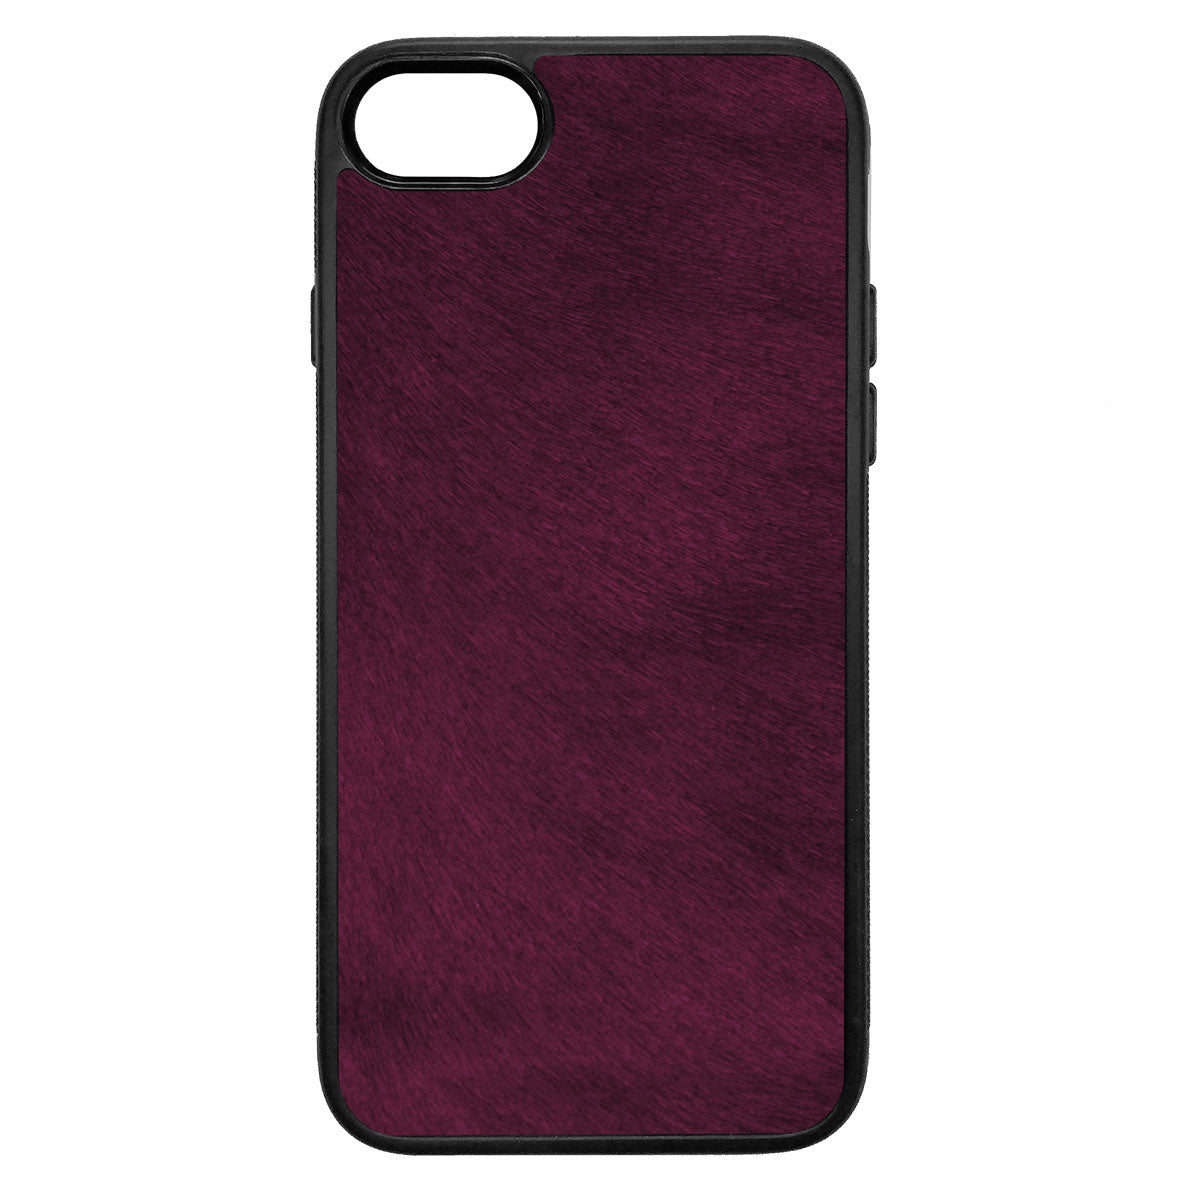 Violet Pony Hair iPhone 7 Leather Case